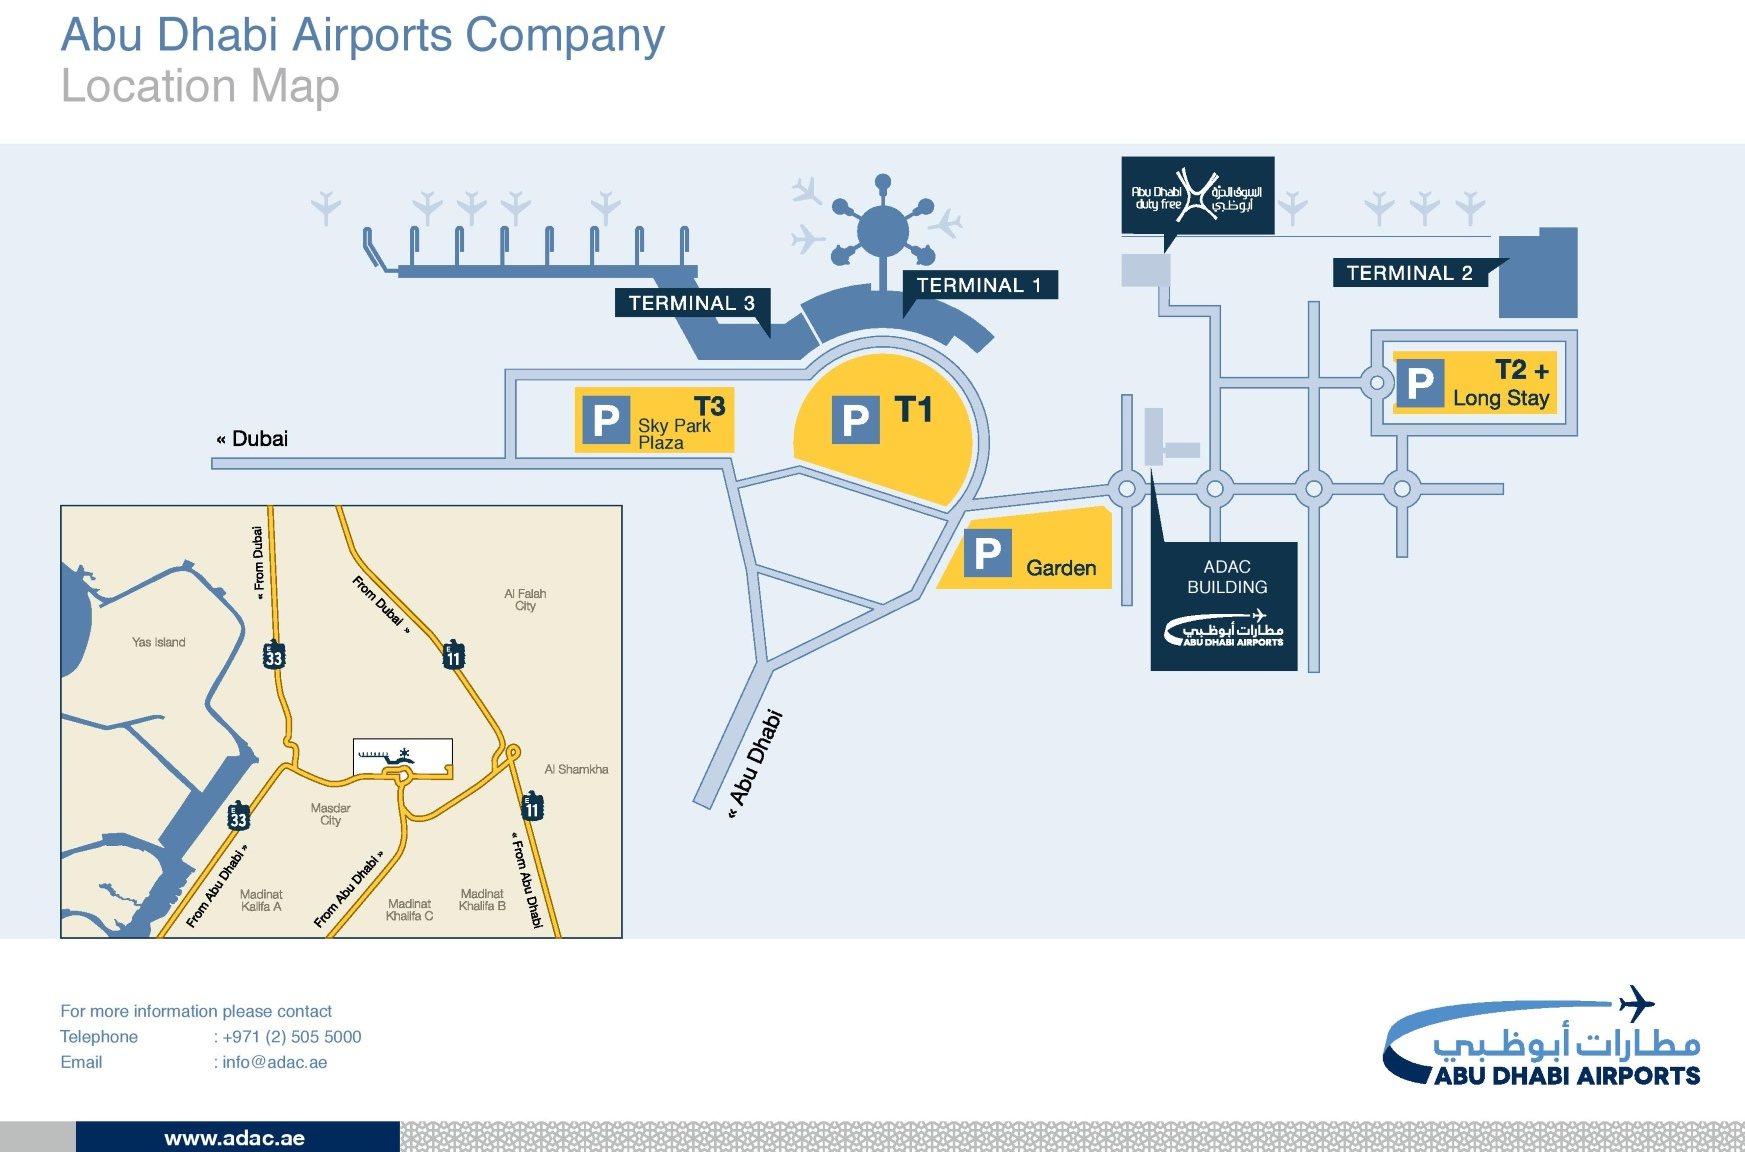 Abu Dhabi airport map